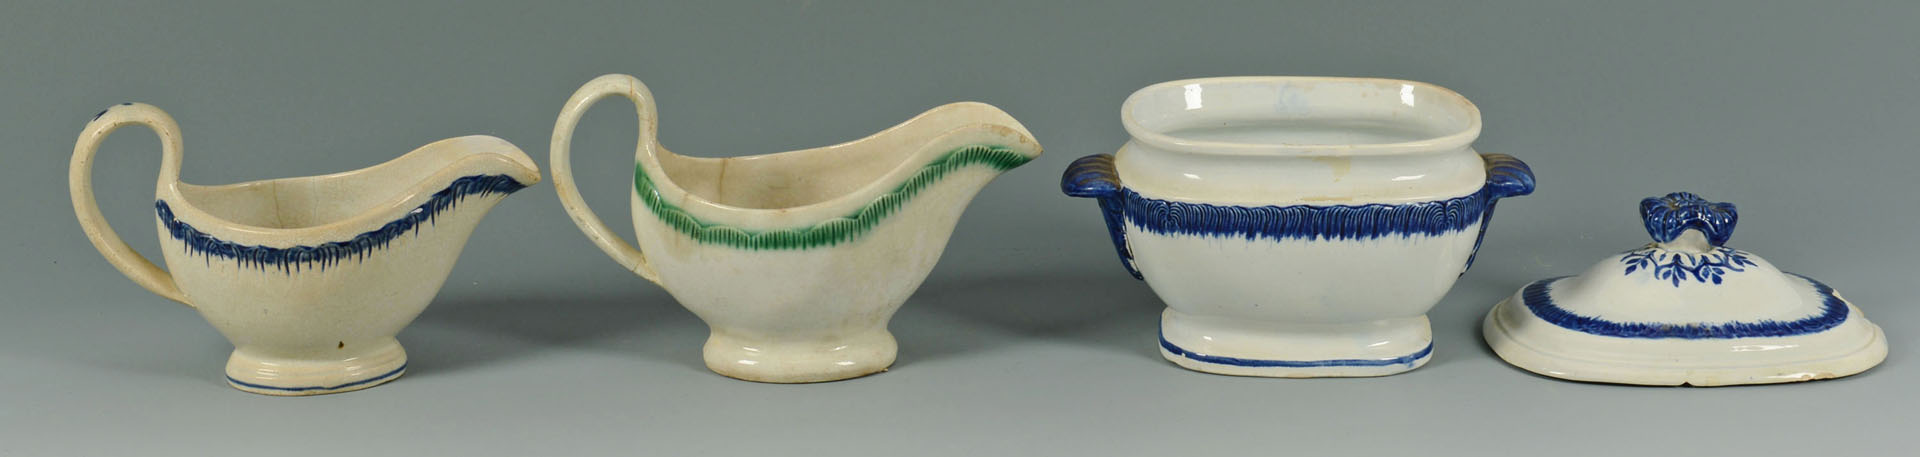 Grouping of Leeds Feather Edge Pearlware, 8